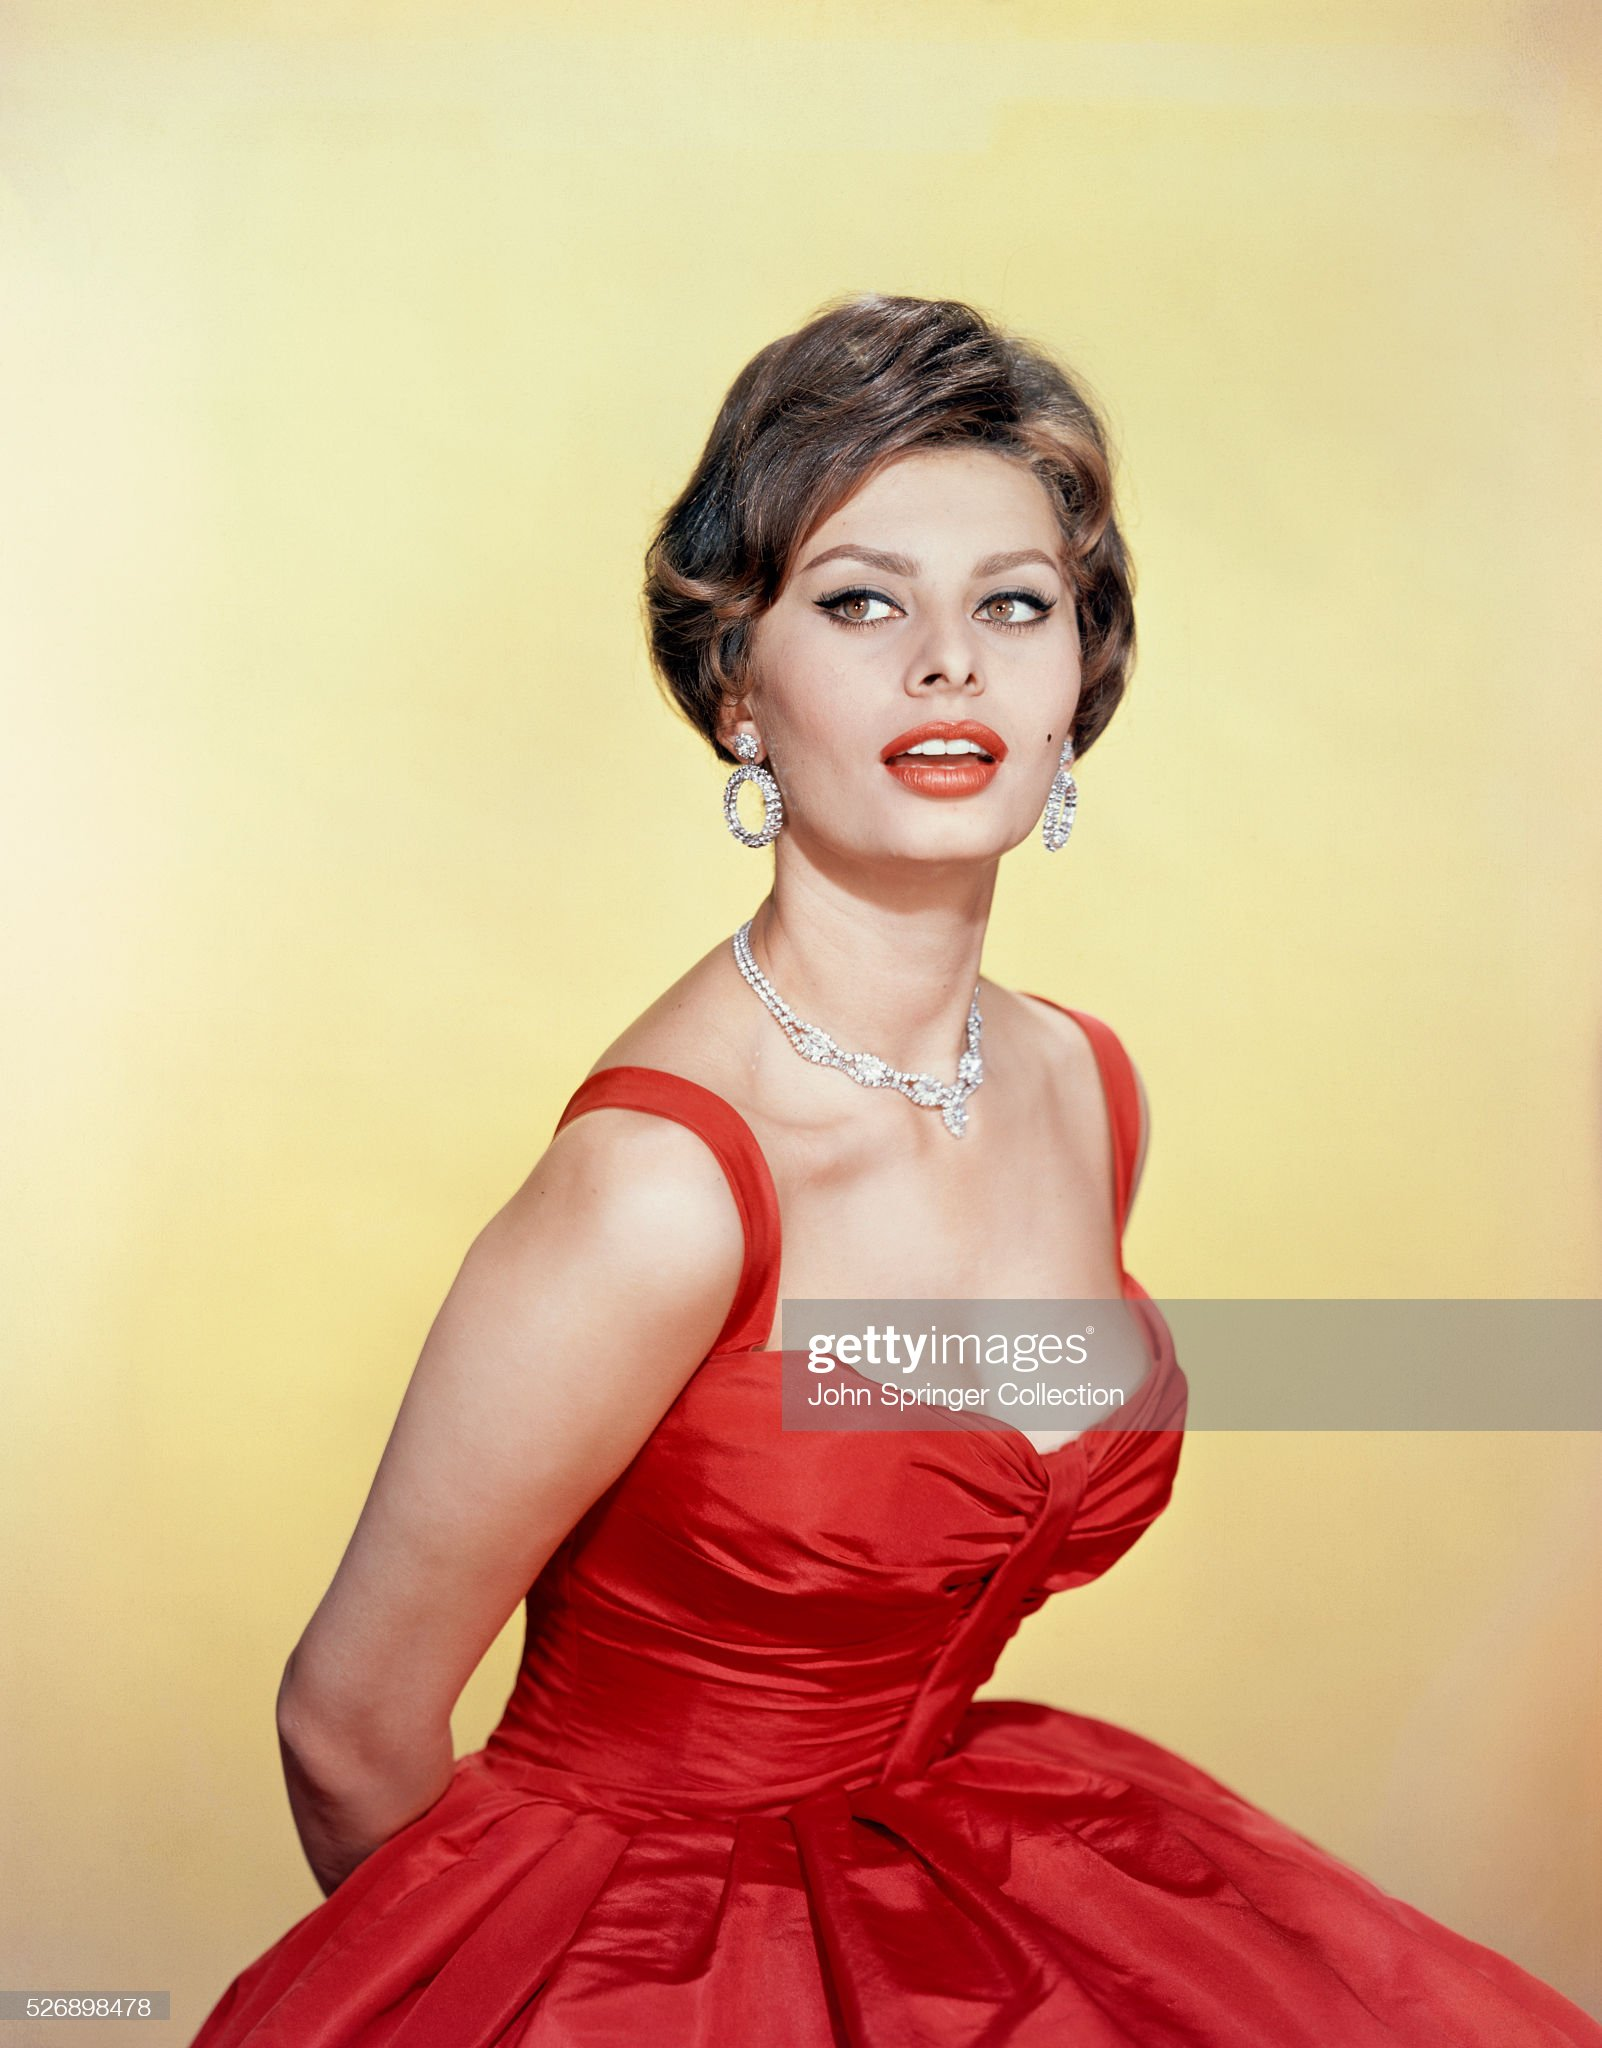 Sophia Loren in Red Gown : News Photo